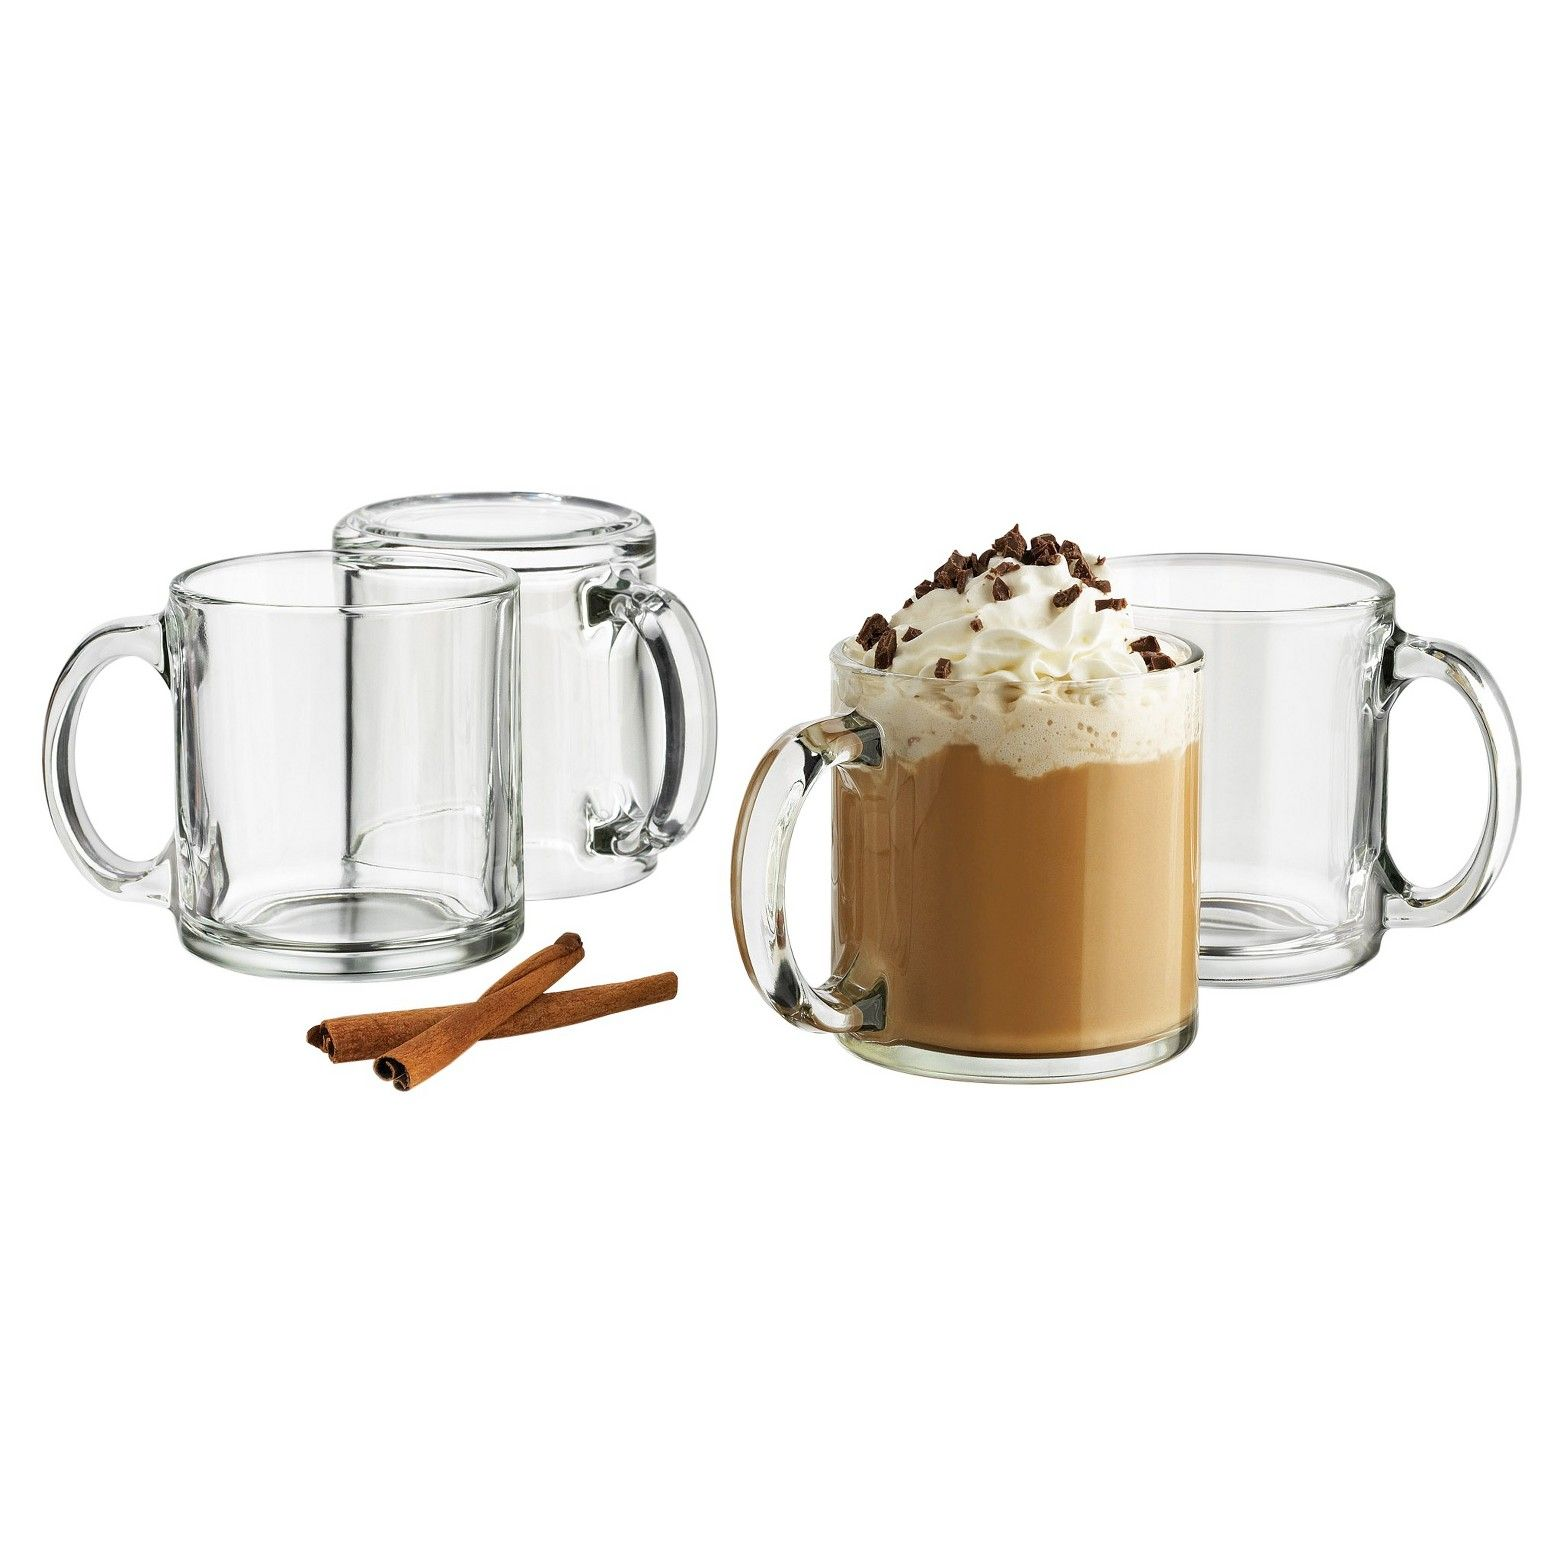 Libbey 13oz Robusta Mug 4pk Set Mugs, Mugs set, Clear